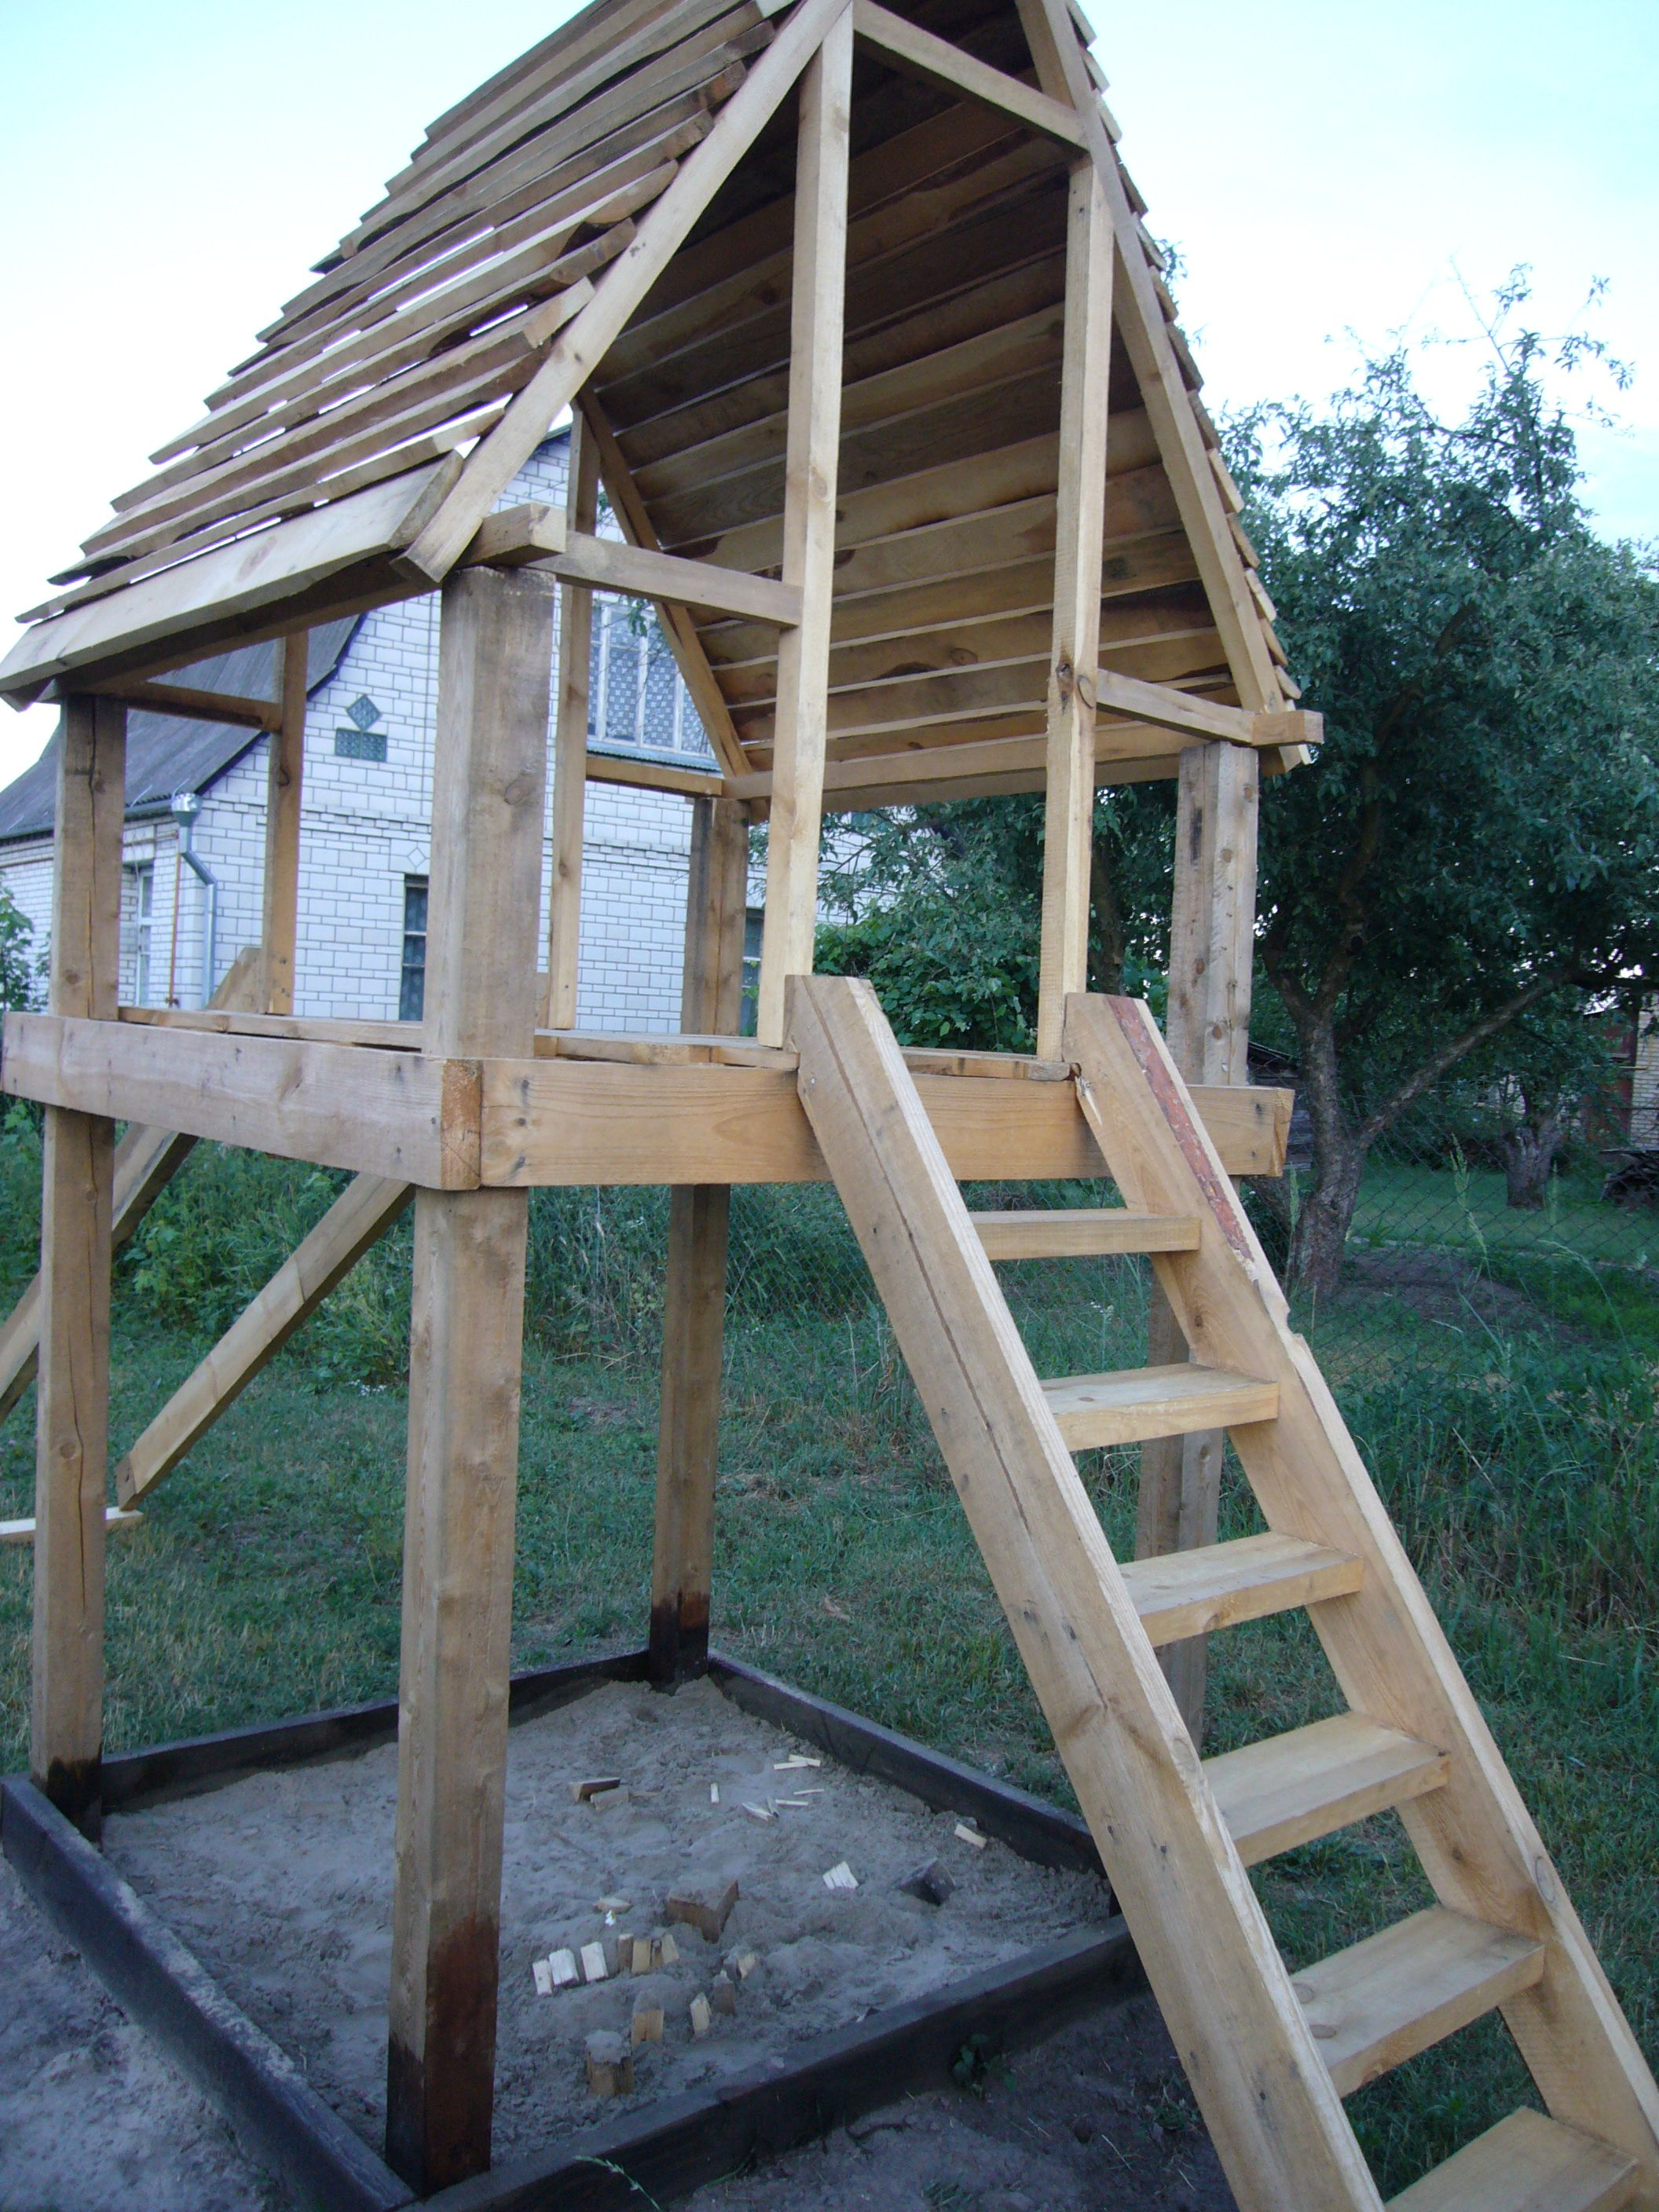 Diy Project Playhouse With Slide Outdoors Play Houses